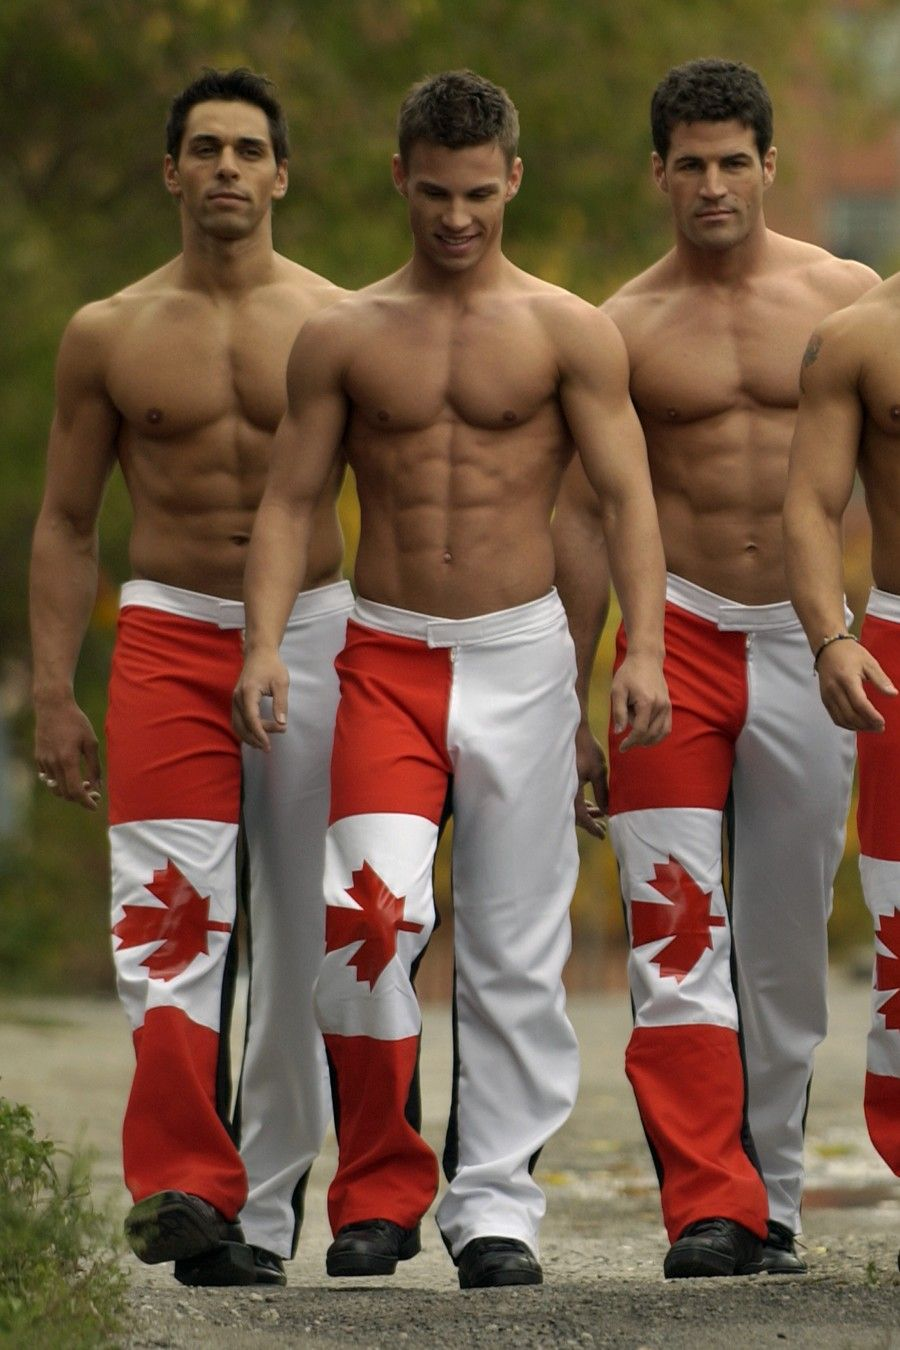 Canadian board or Sexy men board? I JUST CAN'T DECIDE! I know, they live on  both!